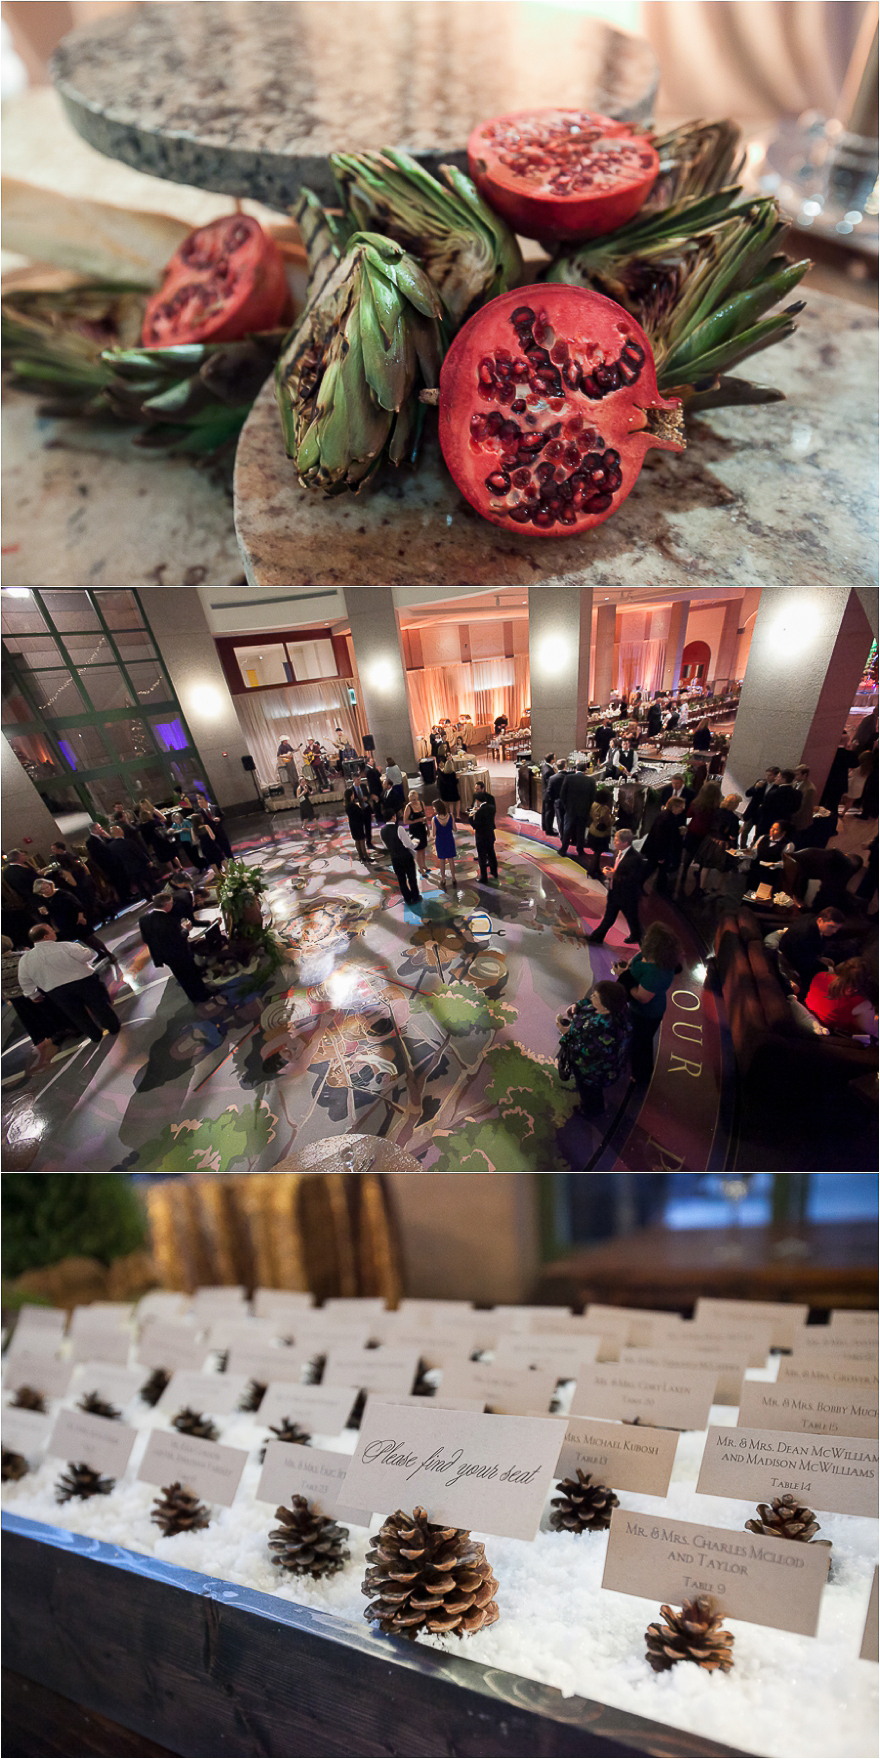 Location shot of a wedding reception held at the Bob Bullock Texas State history Museum